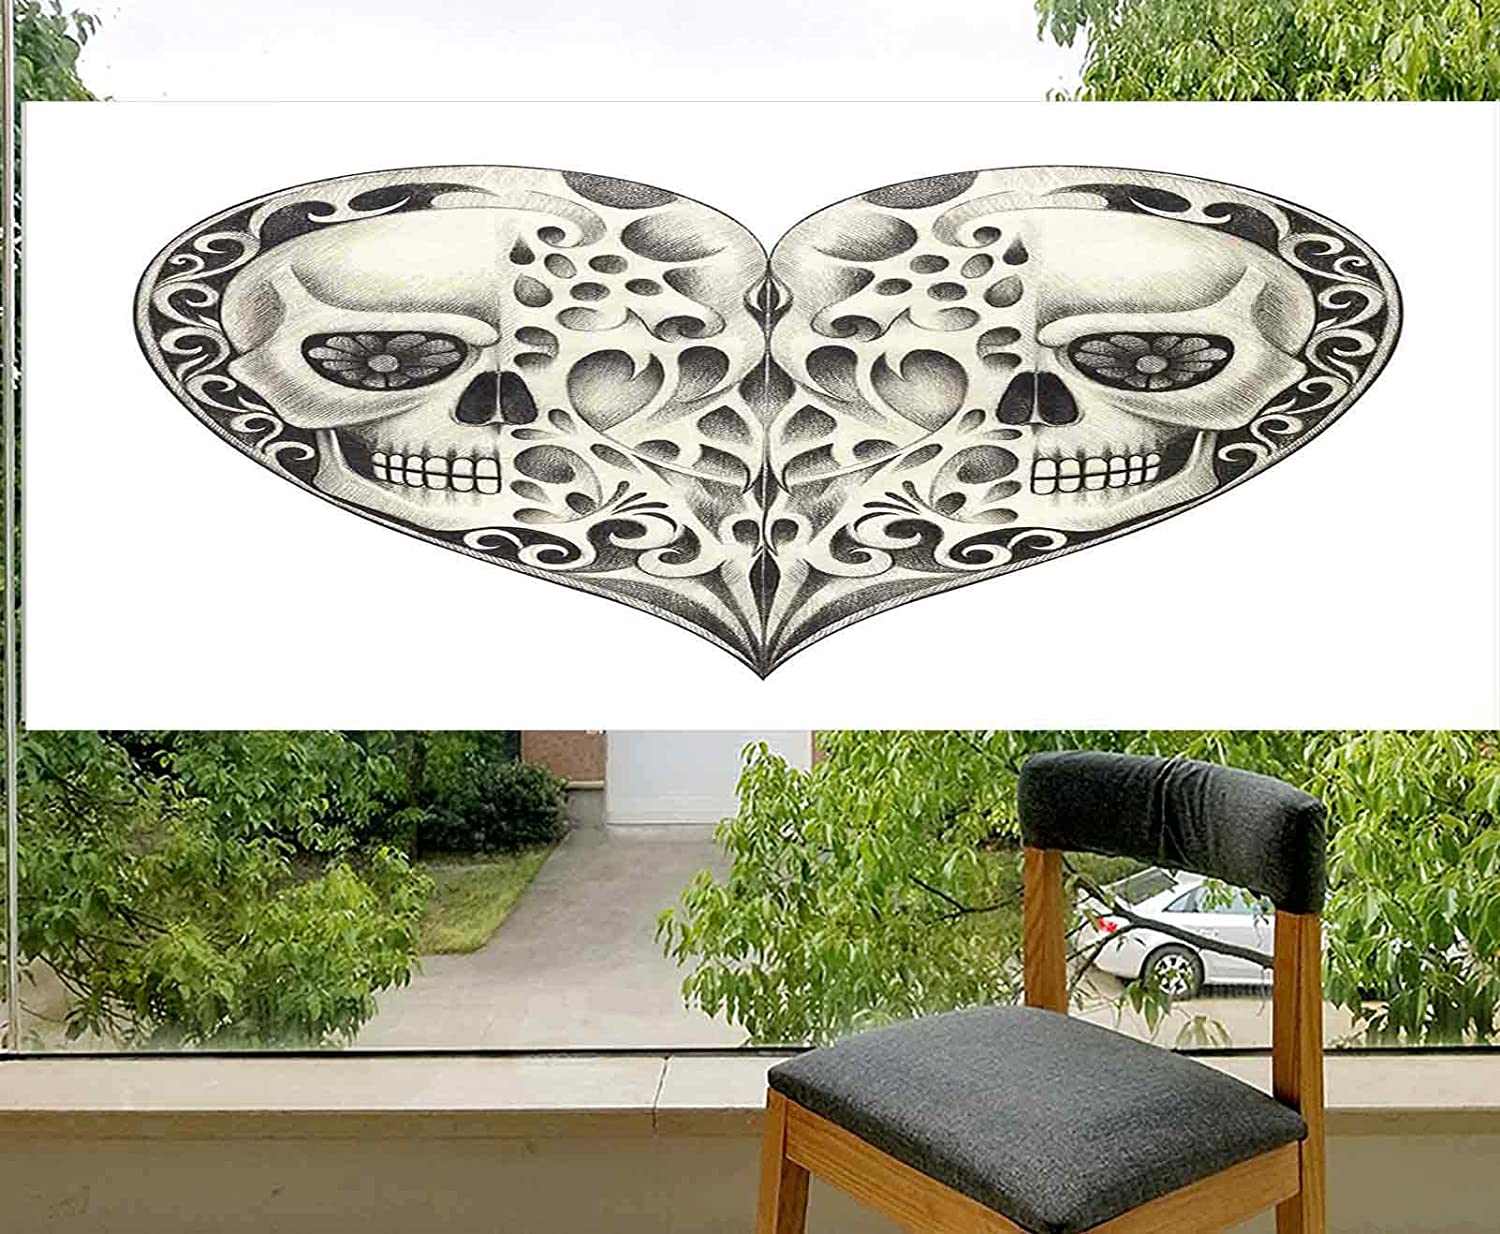 LCGGDB No-Glue Static Decorative Privacy Window Films,Twin Half Fire Design in Hearts Festive Spanish Image Print Glass Films for Home Office Meeting Room Classroom,36x18,Cream and Black